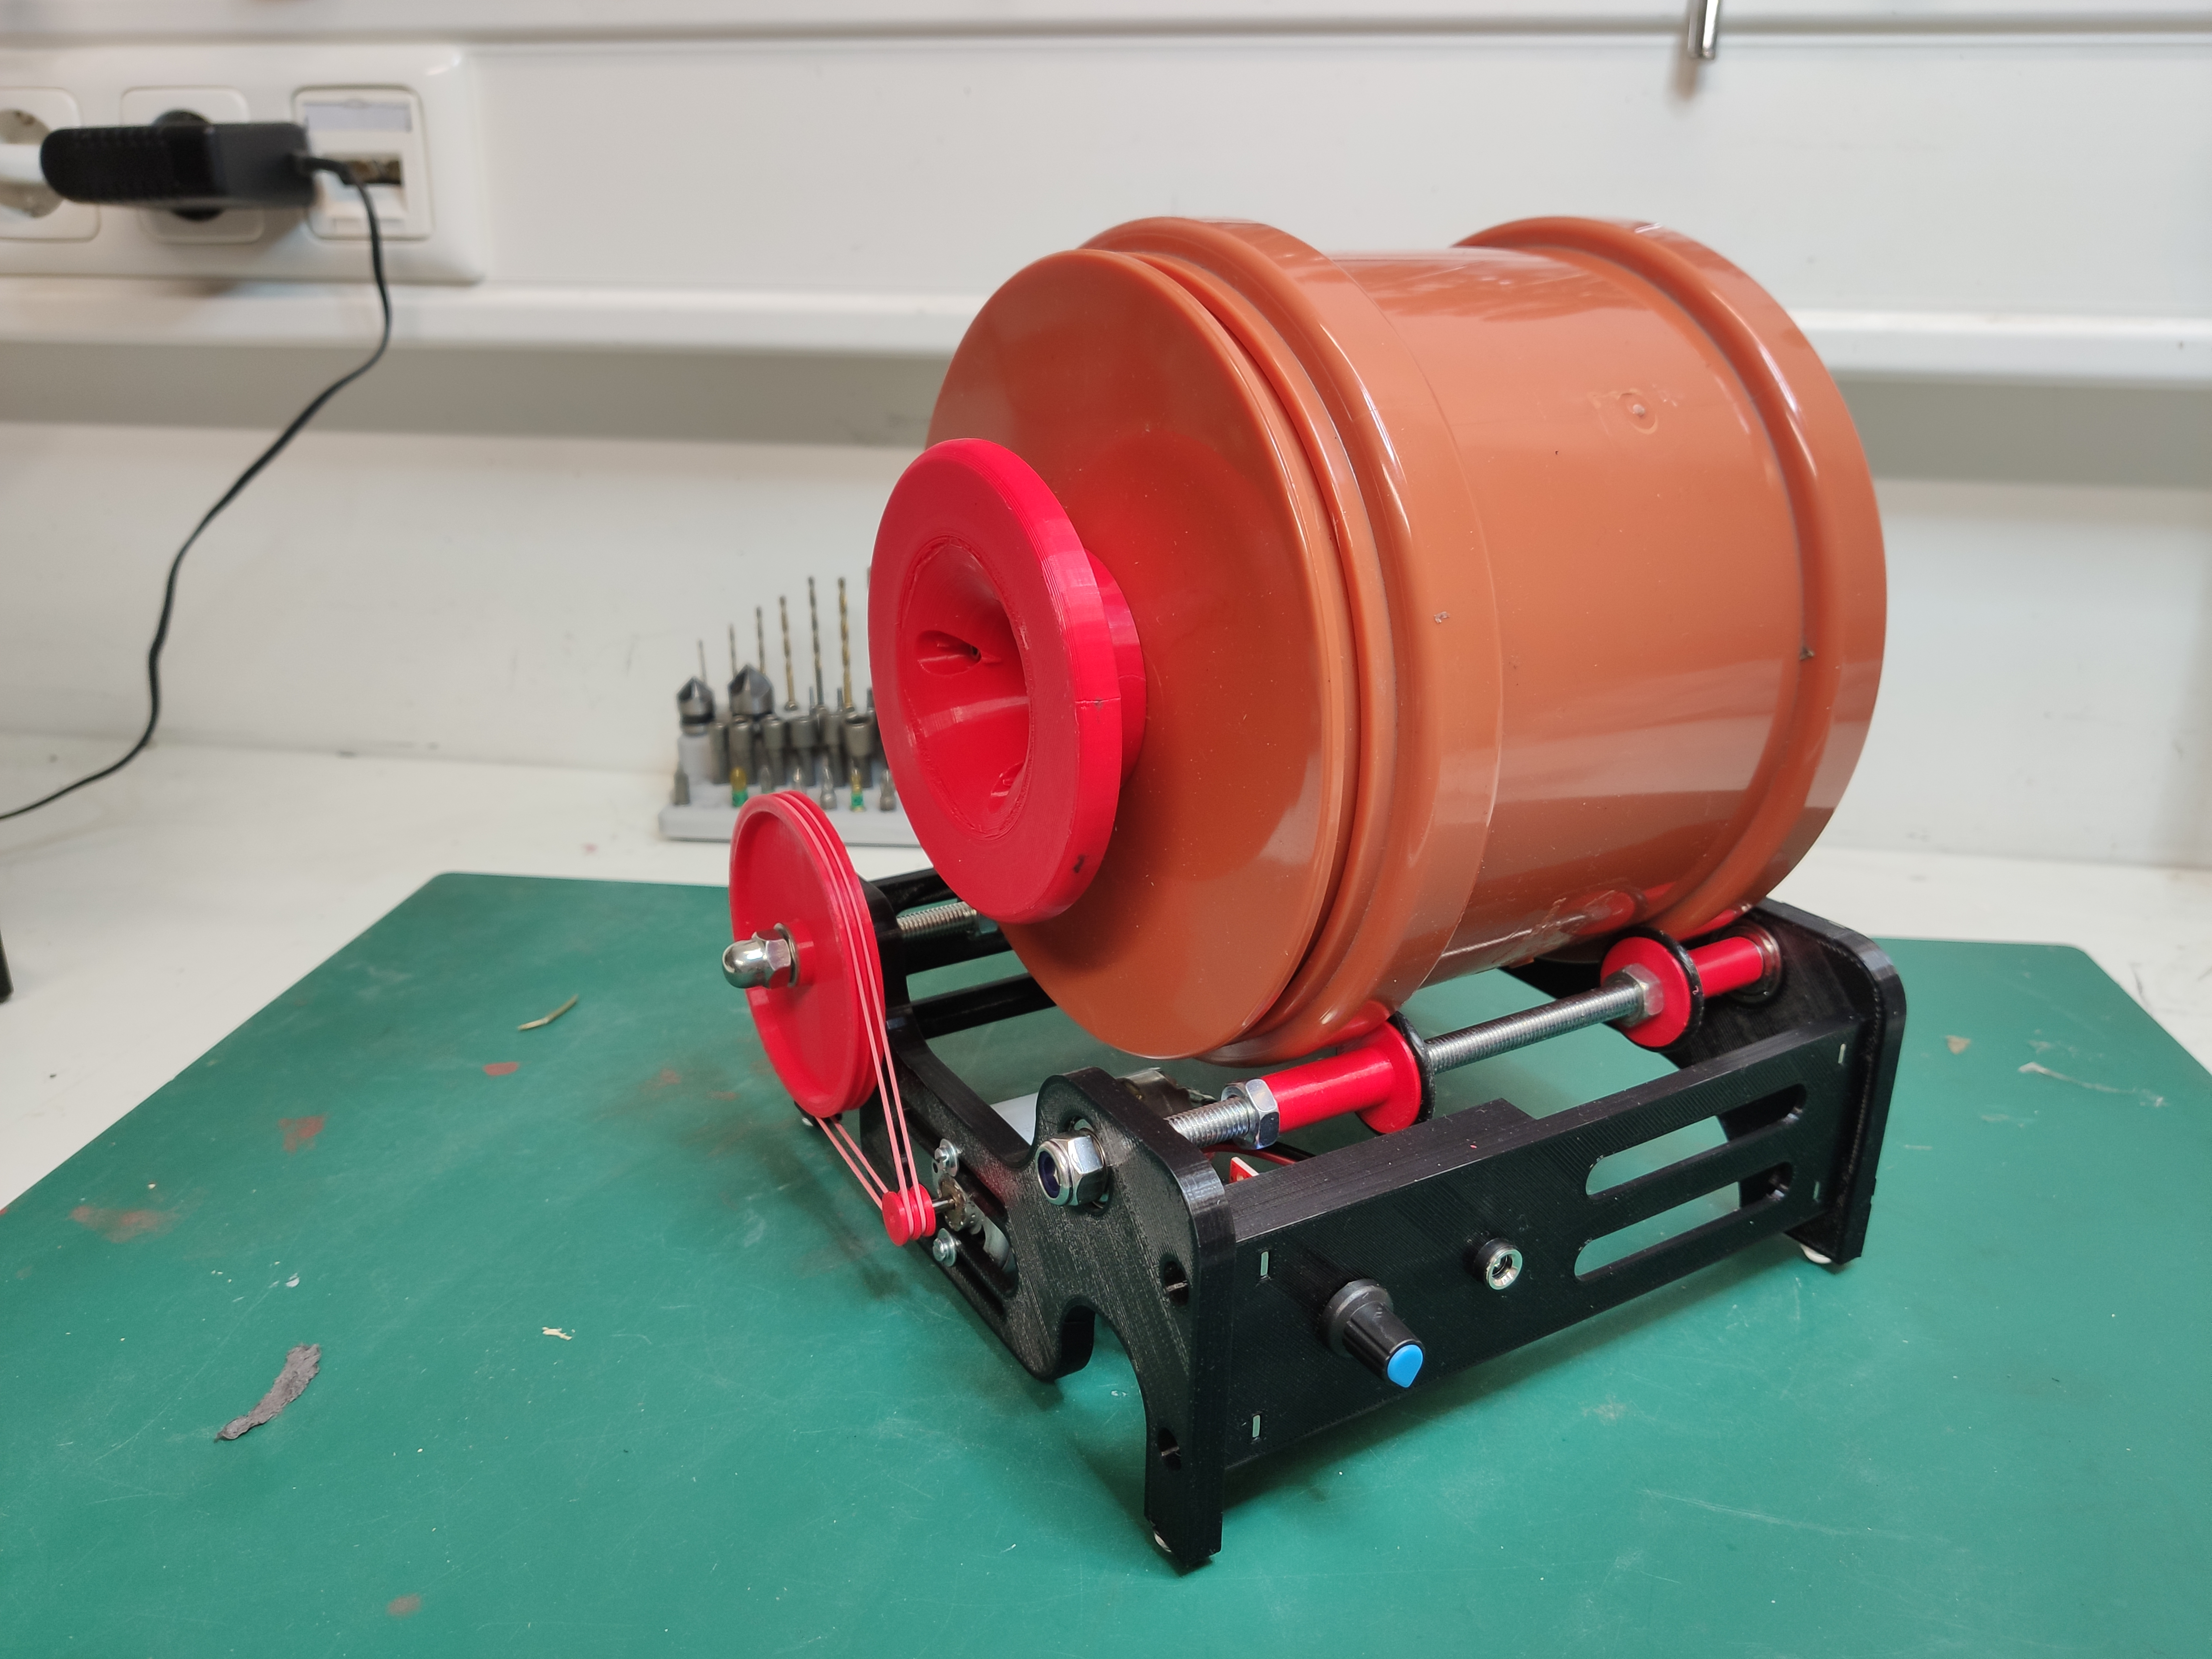 3D printed and speed controlled 160mm Rock Tumbler